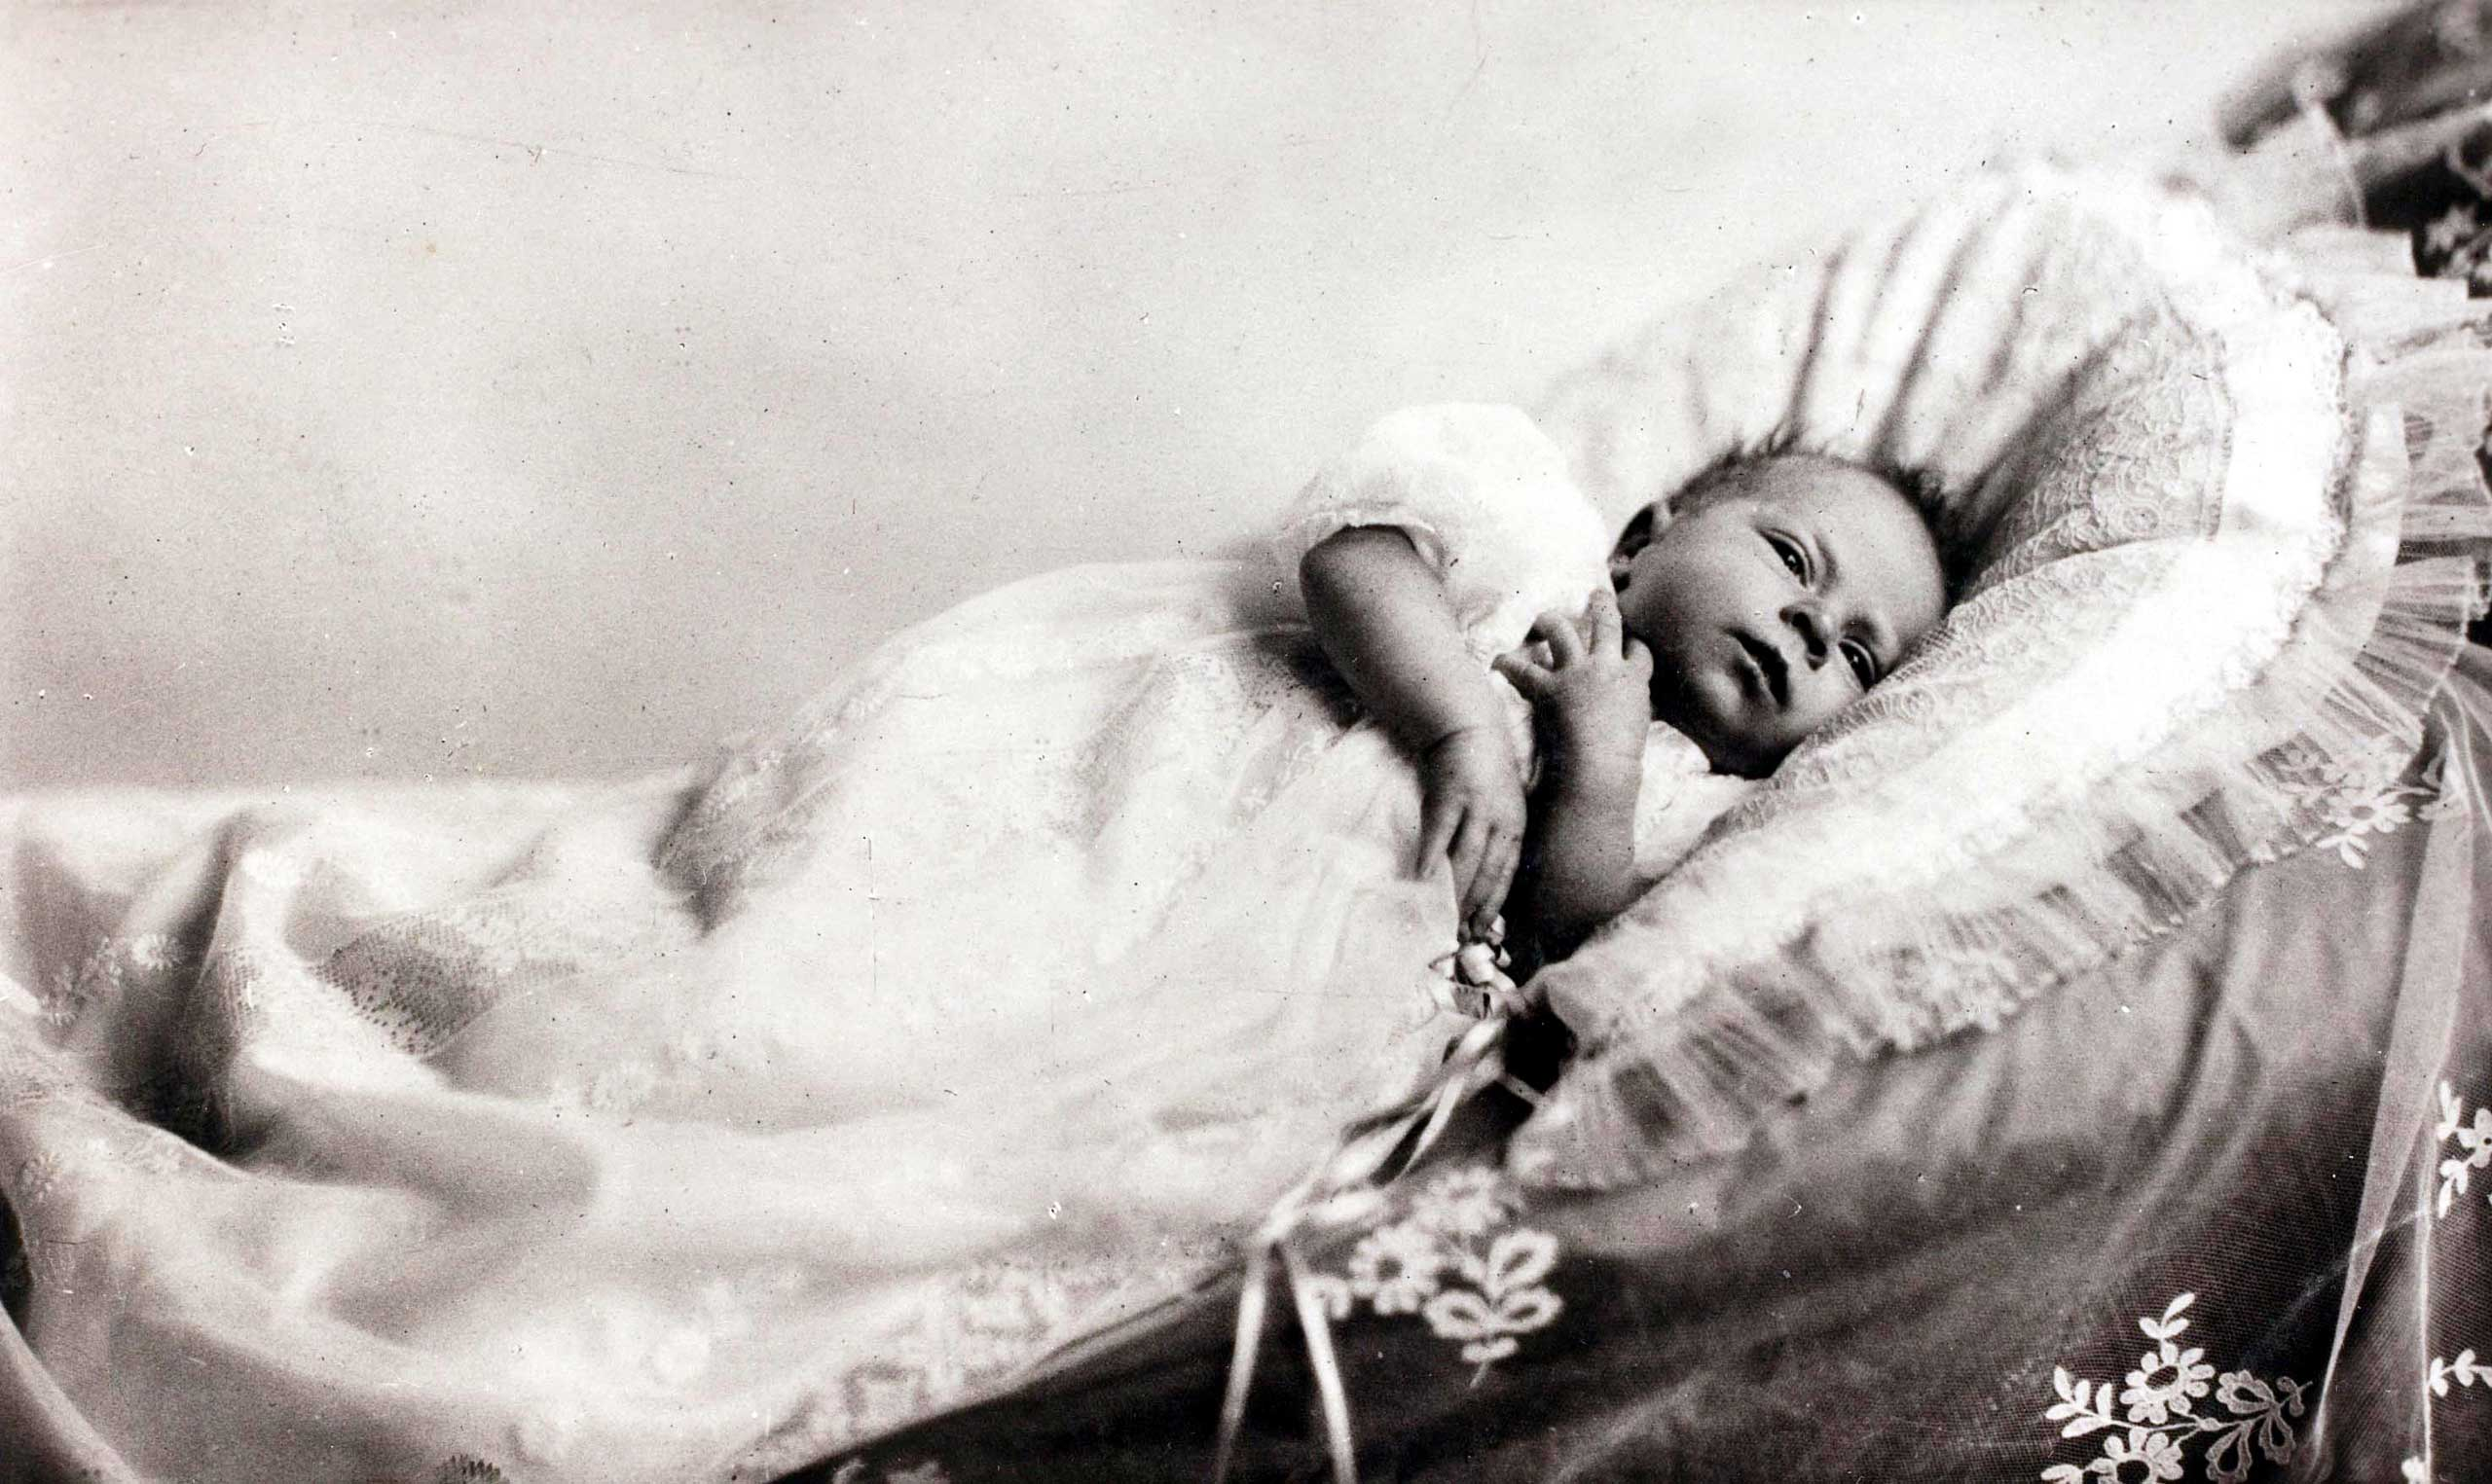 In 1926, as a tiny baby, Princess Elizabeth already displays the solemn face that she has deployed so often in her public duties since becoming Queen.